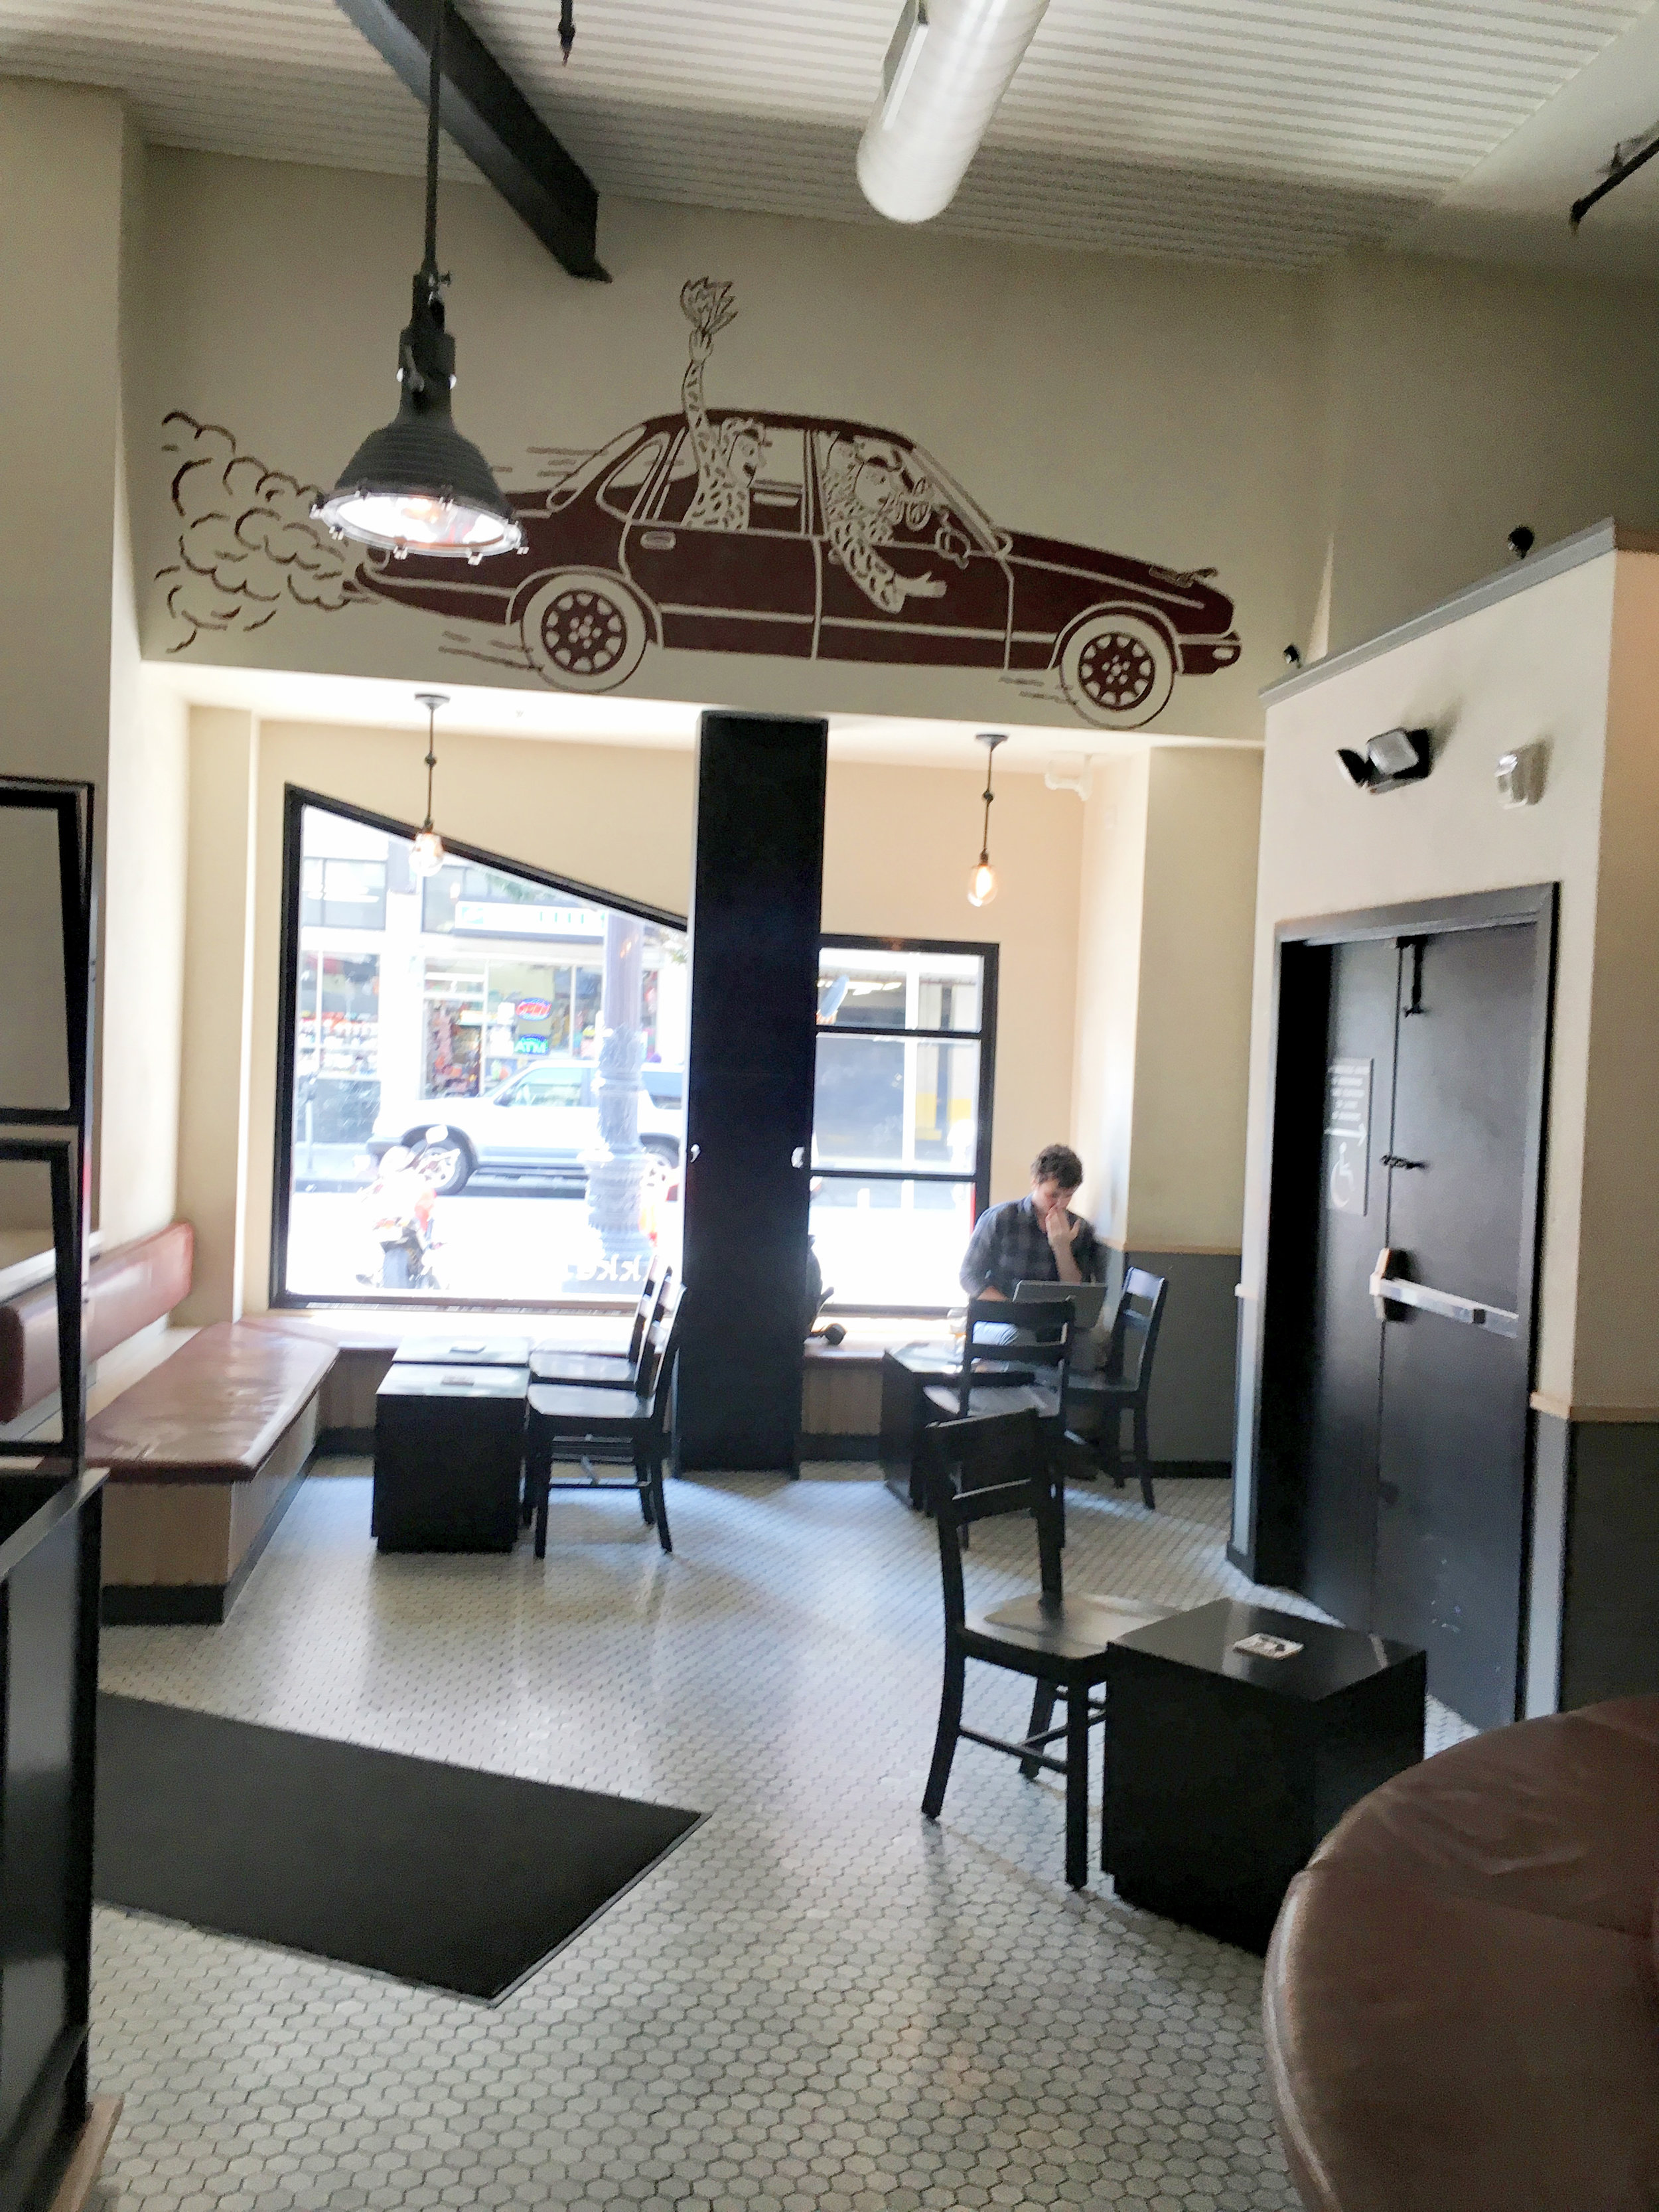 The Quick and Cheap Guide to Visiting San Francisco in Three Days - Mikkeller Bar, Tenderloin